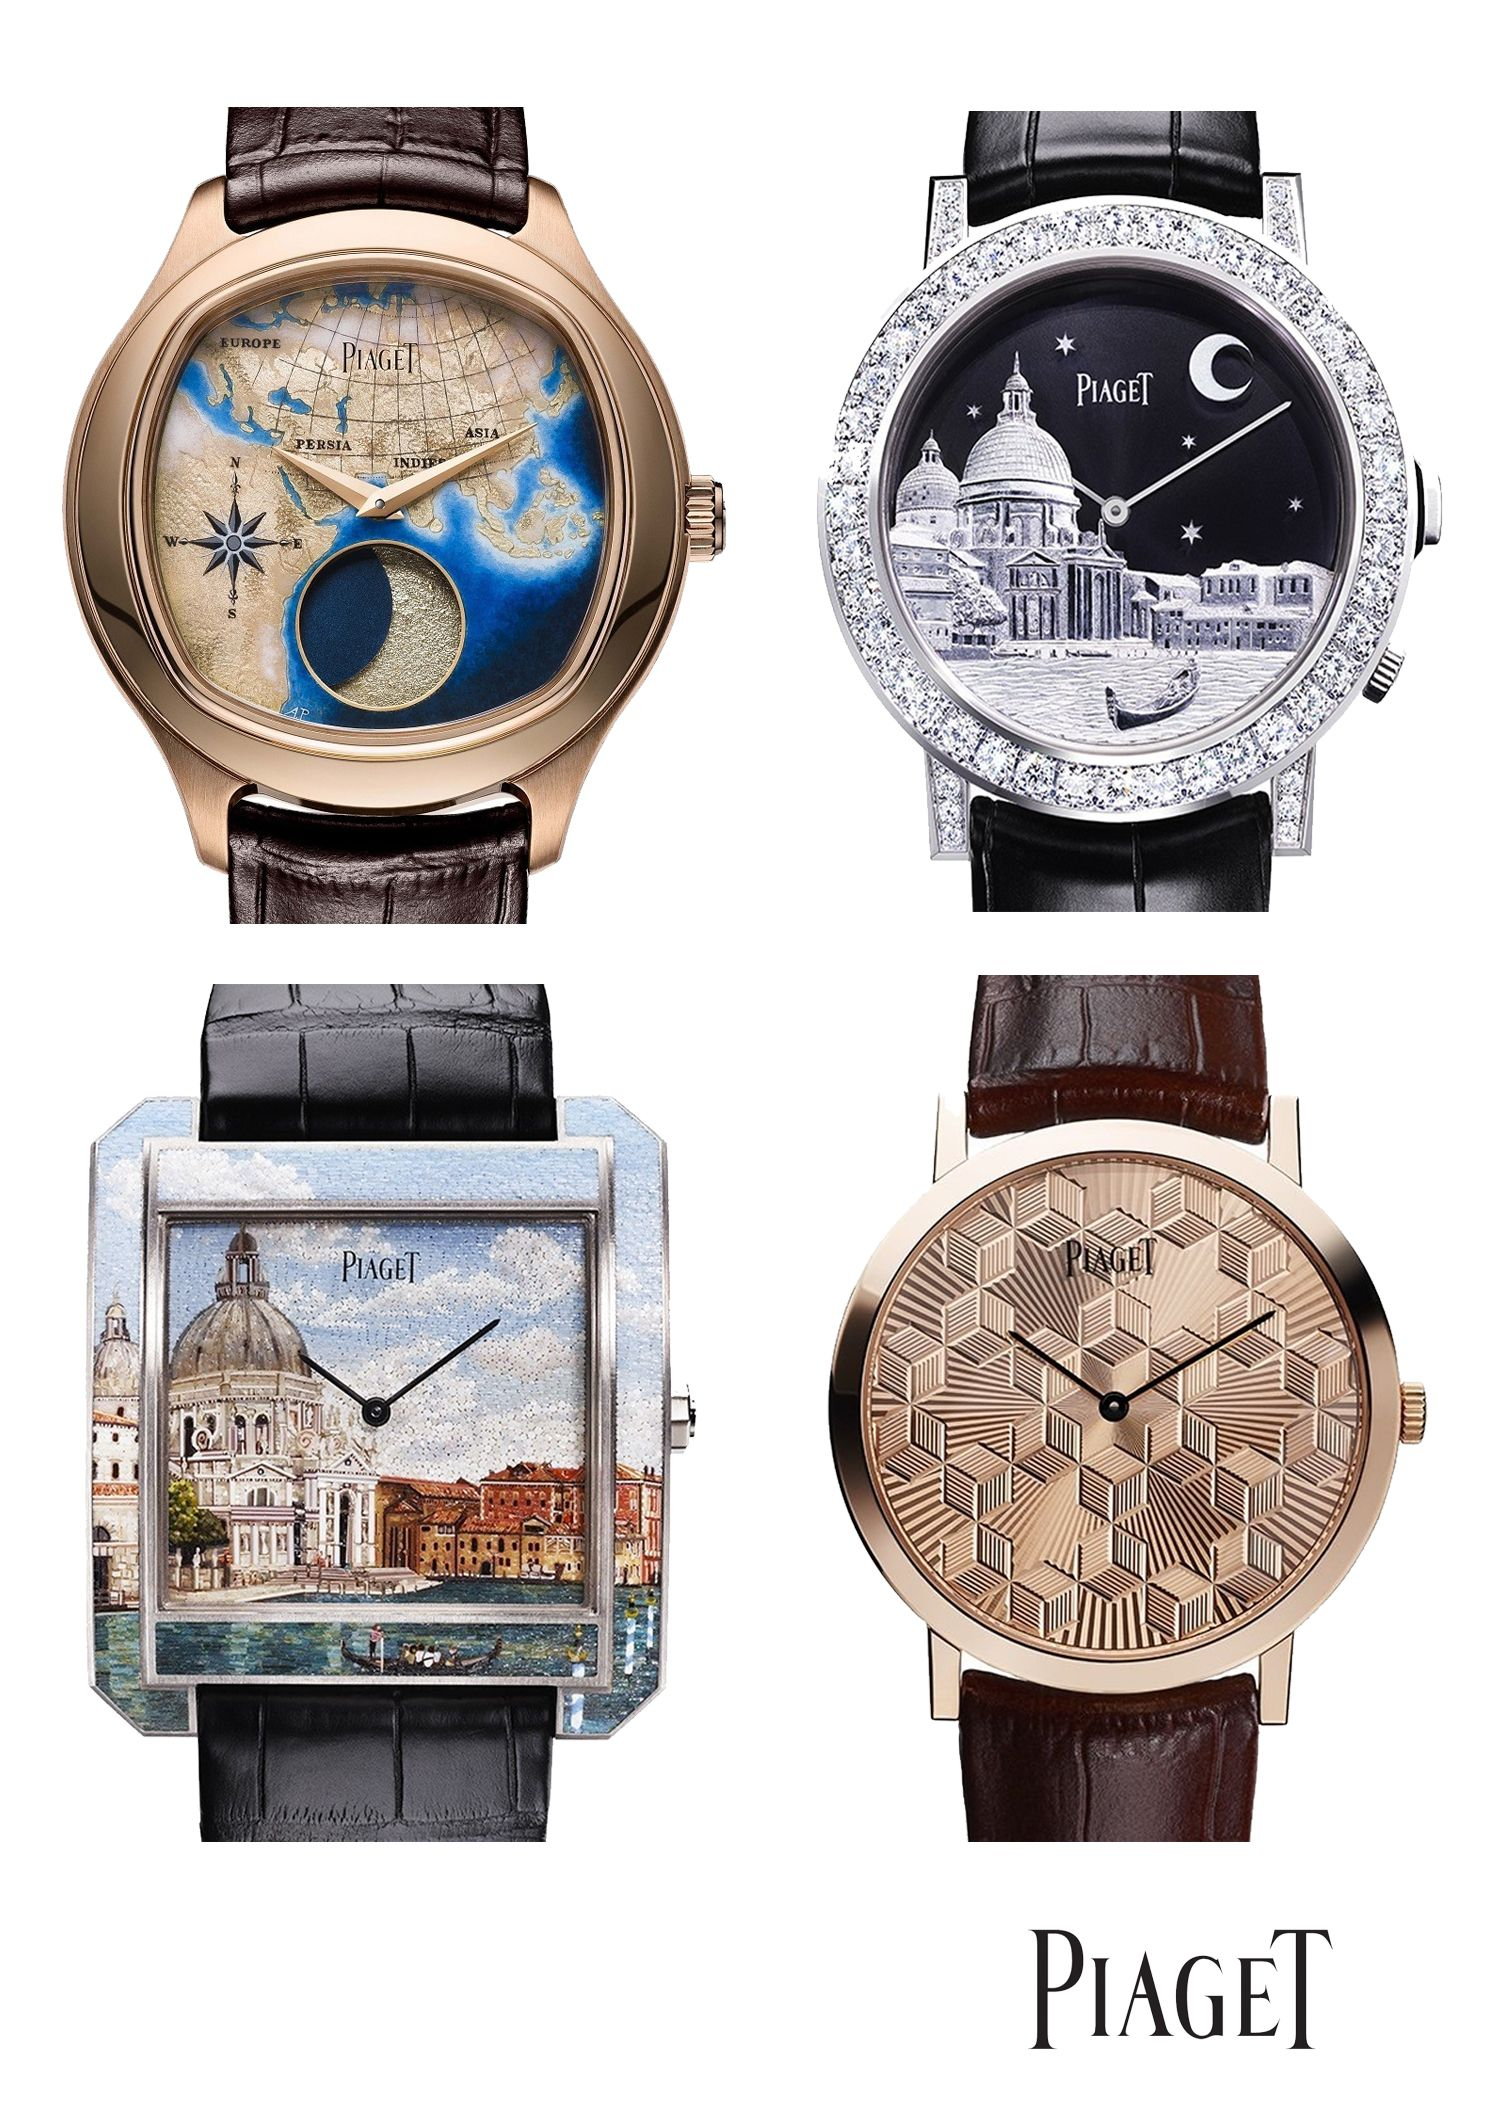 Secrets Lights Collection De Piaget Rutadelaseda Altarelojeria Lux Luxurywatches Travel Watches For Men Watches Jewelry Swiss Watches